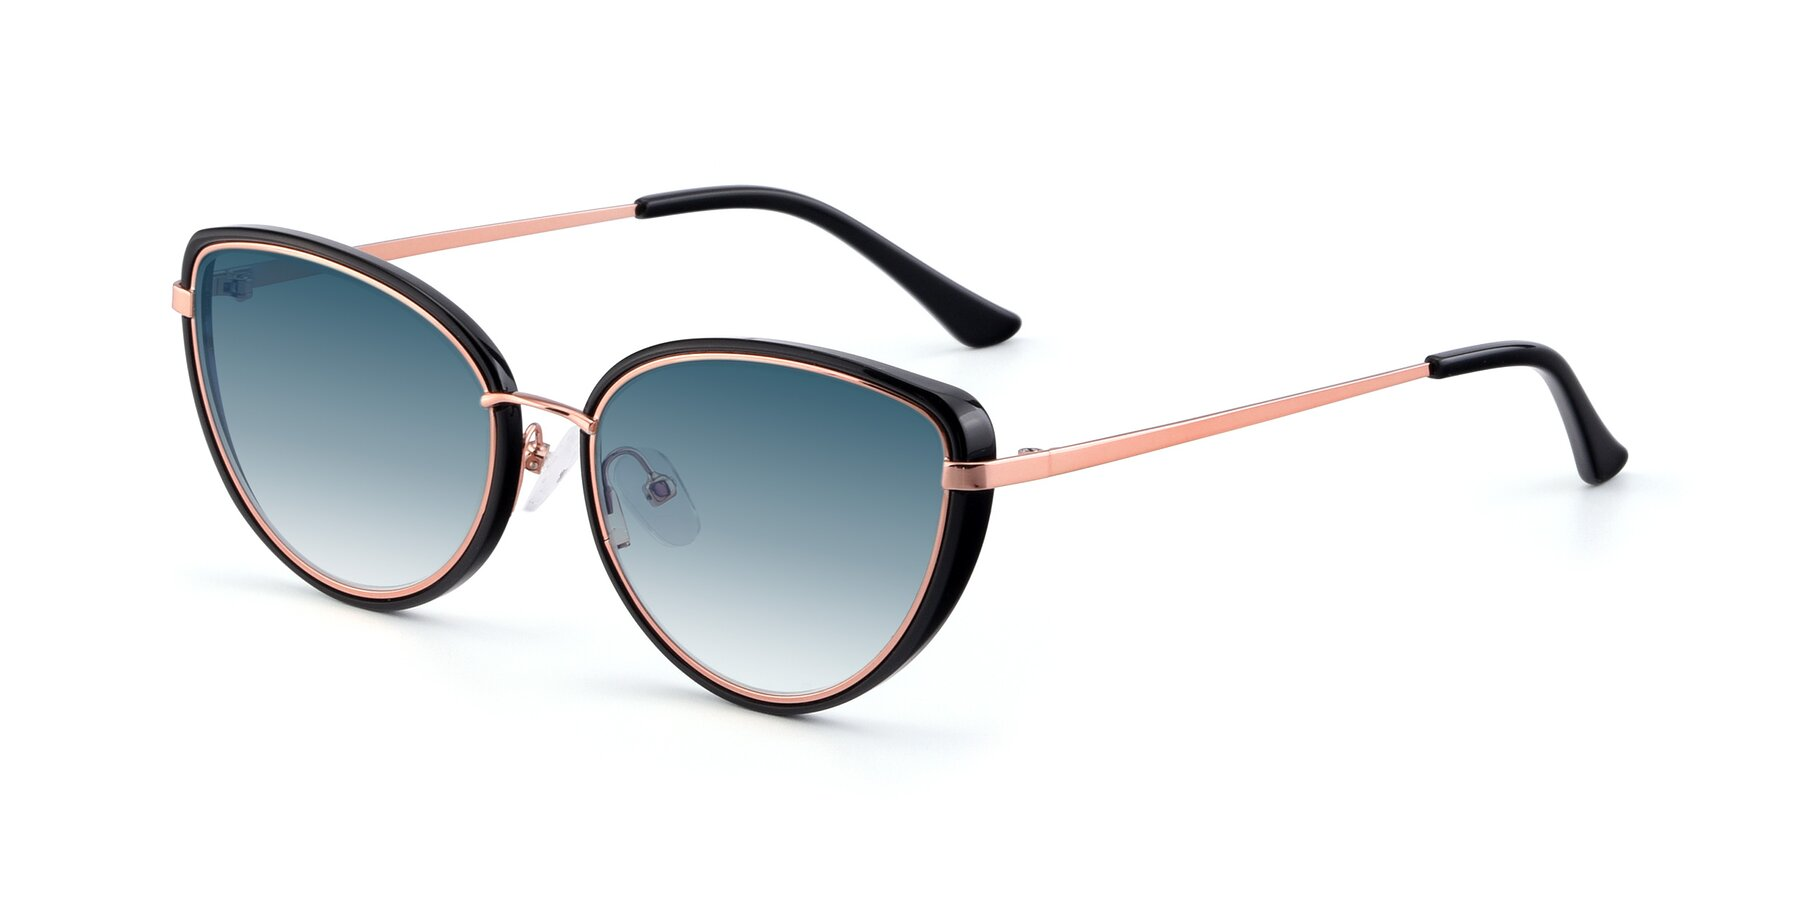 Angle of 17706 in Black-Rose Gold with Blue Gradient Lenses